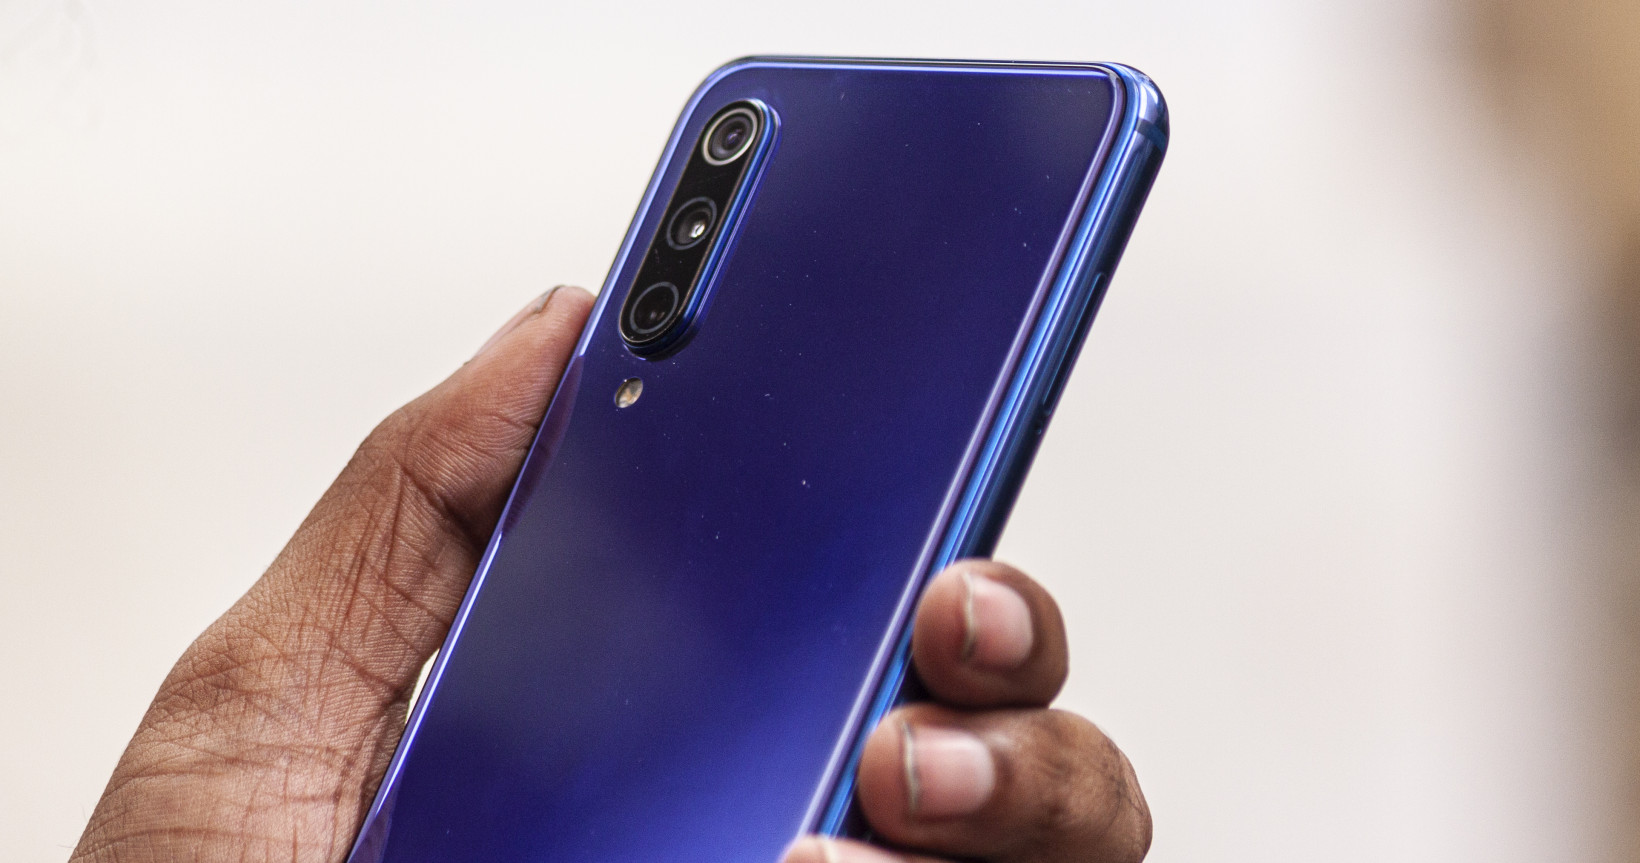 Xiaomi's Mi 9 SE features a compact build that's easy to grip, and a beautiful finish